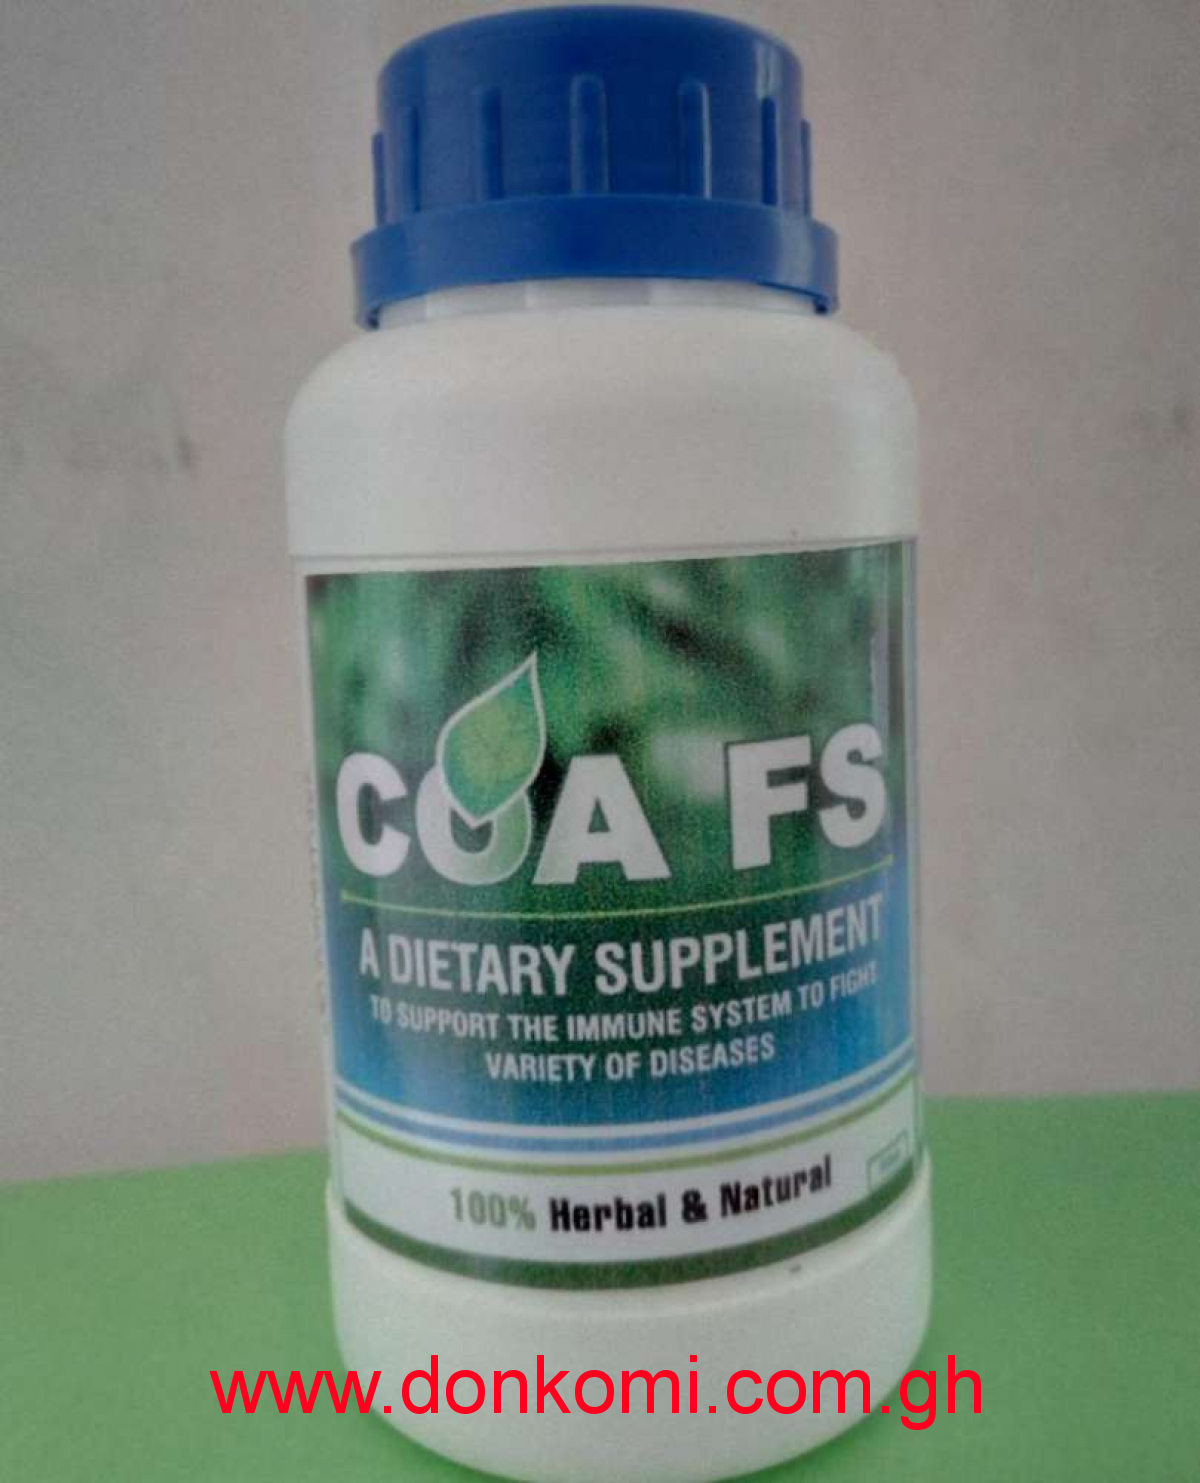 COA FS - YOUR NUMBER 1 IMMUNE BOOSTER